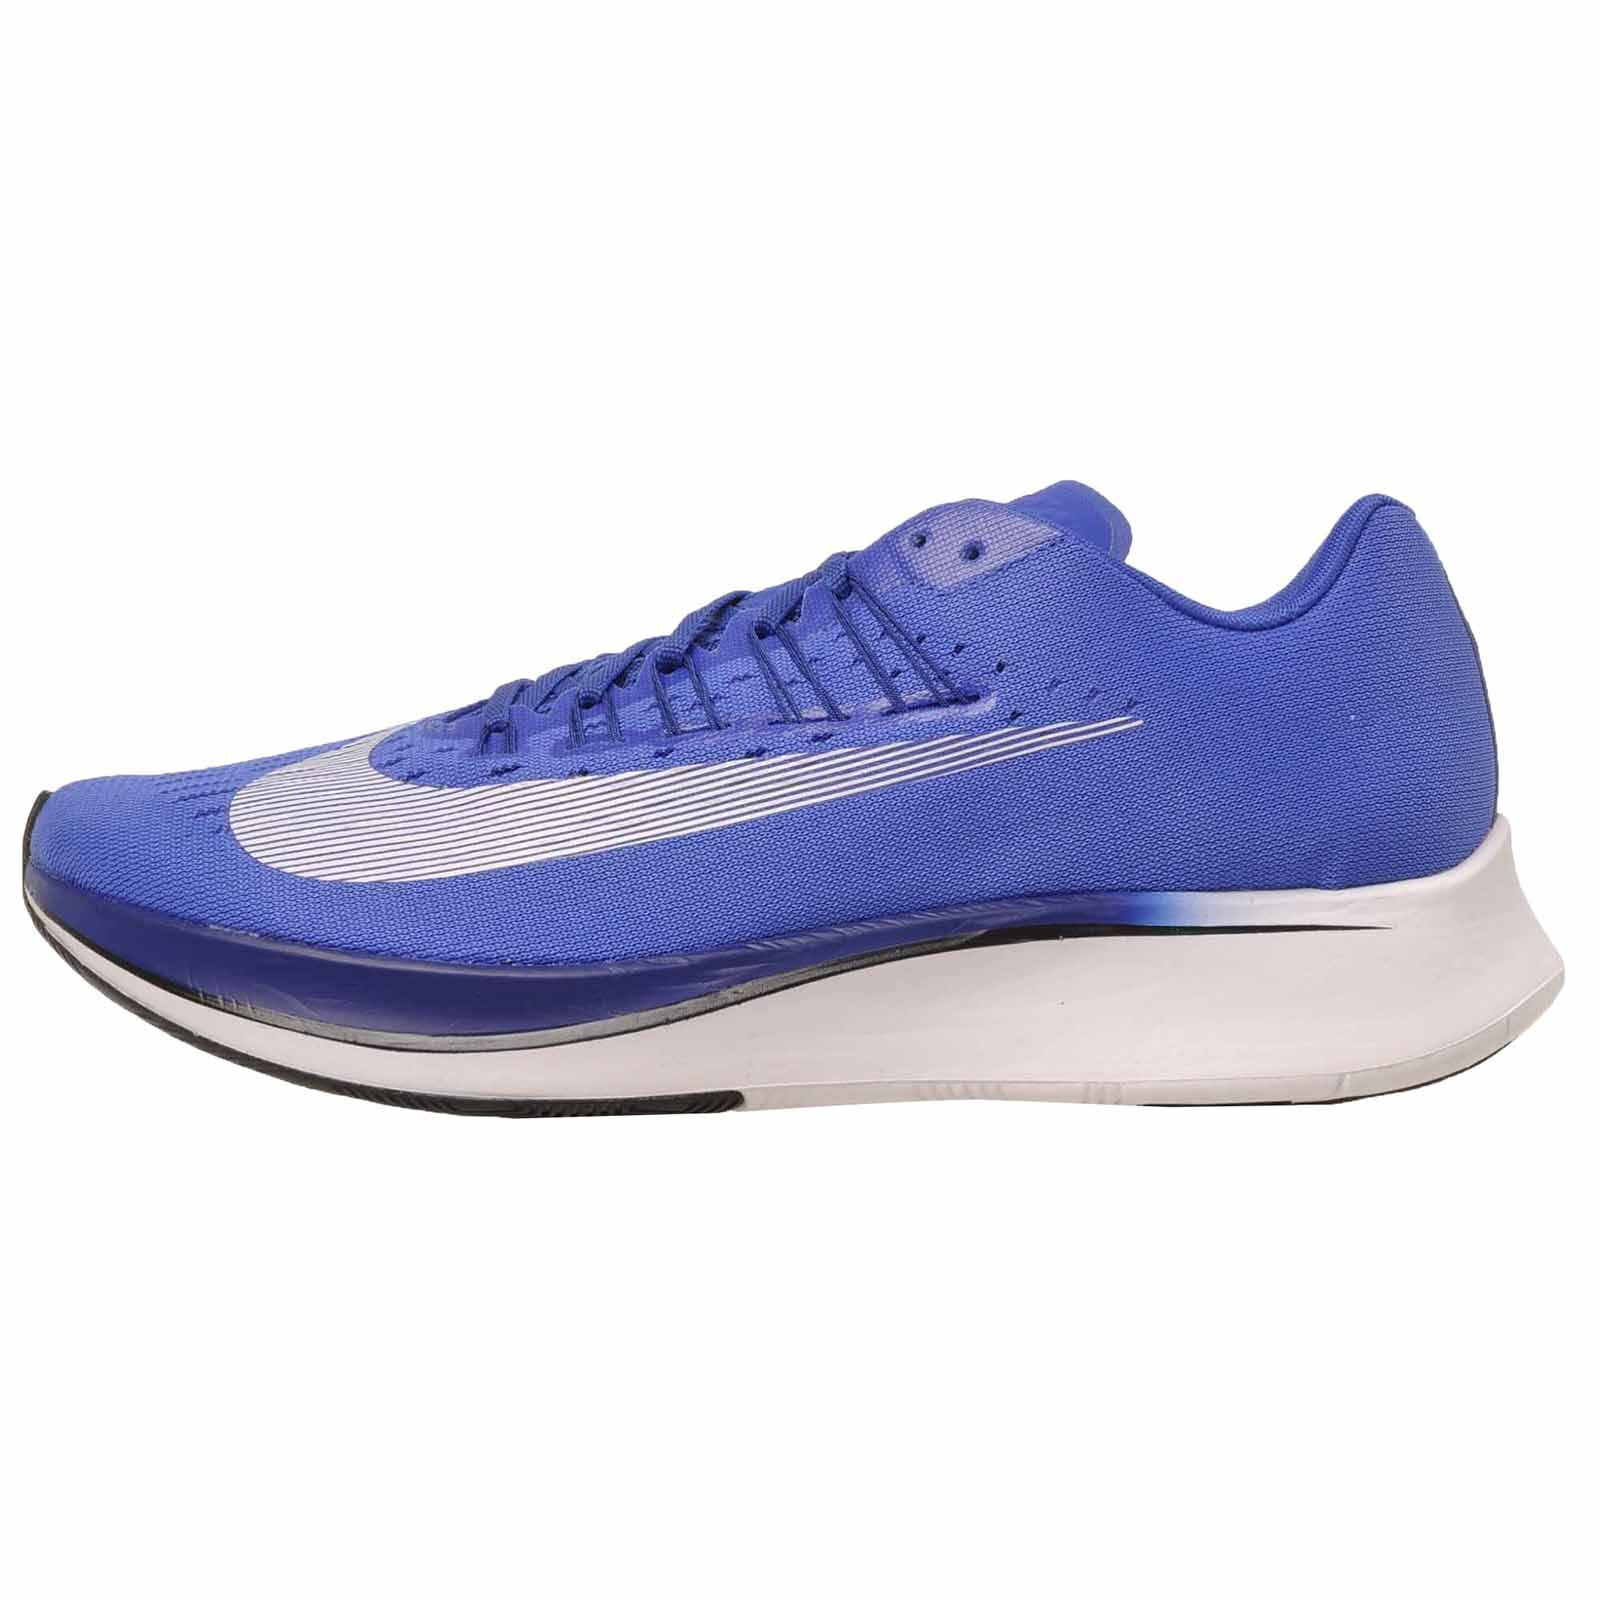 Nike Zoom Fly Running Hommes Chaussures Royal Bleu blanc 880848-411